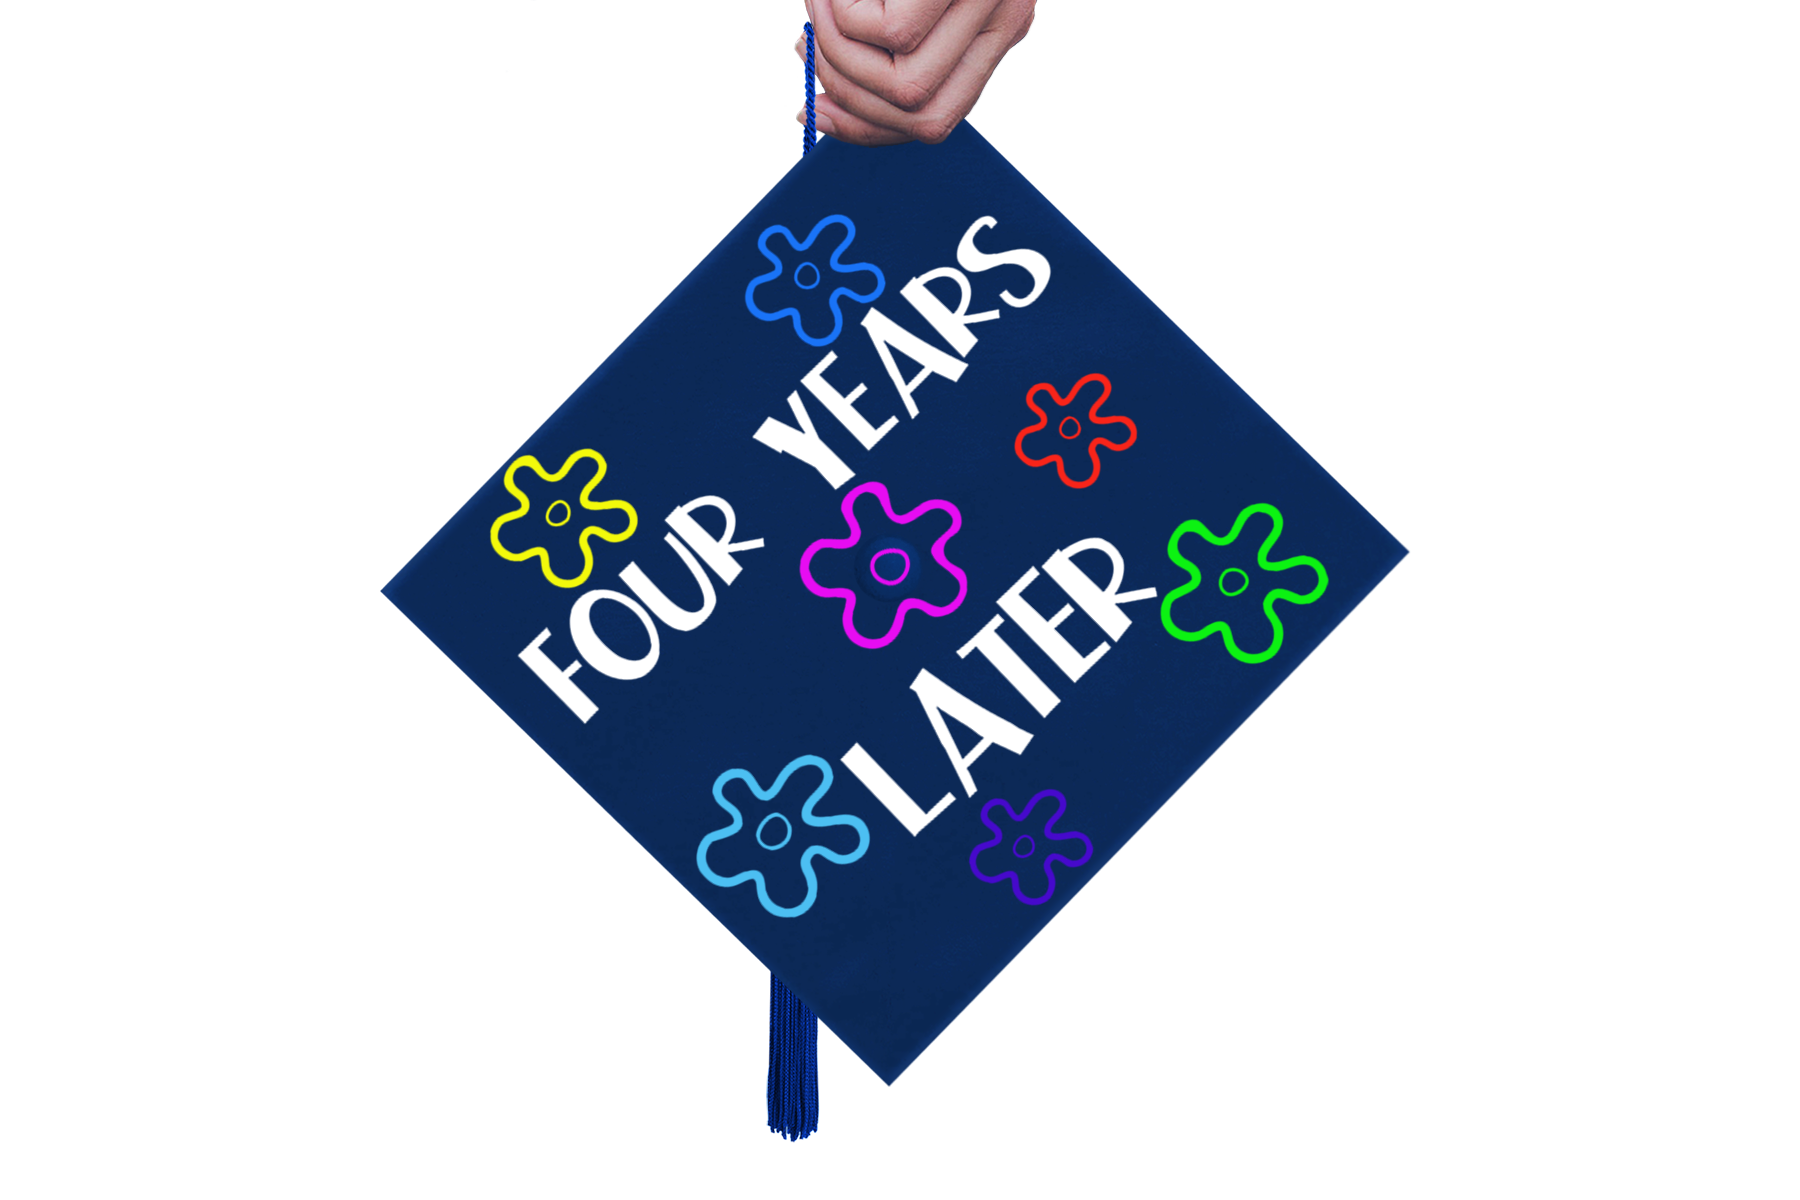 Graduation Cap Design - Four Years Later- A Mortar Board SVG example image 3